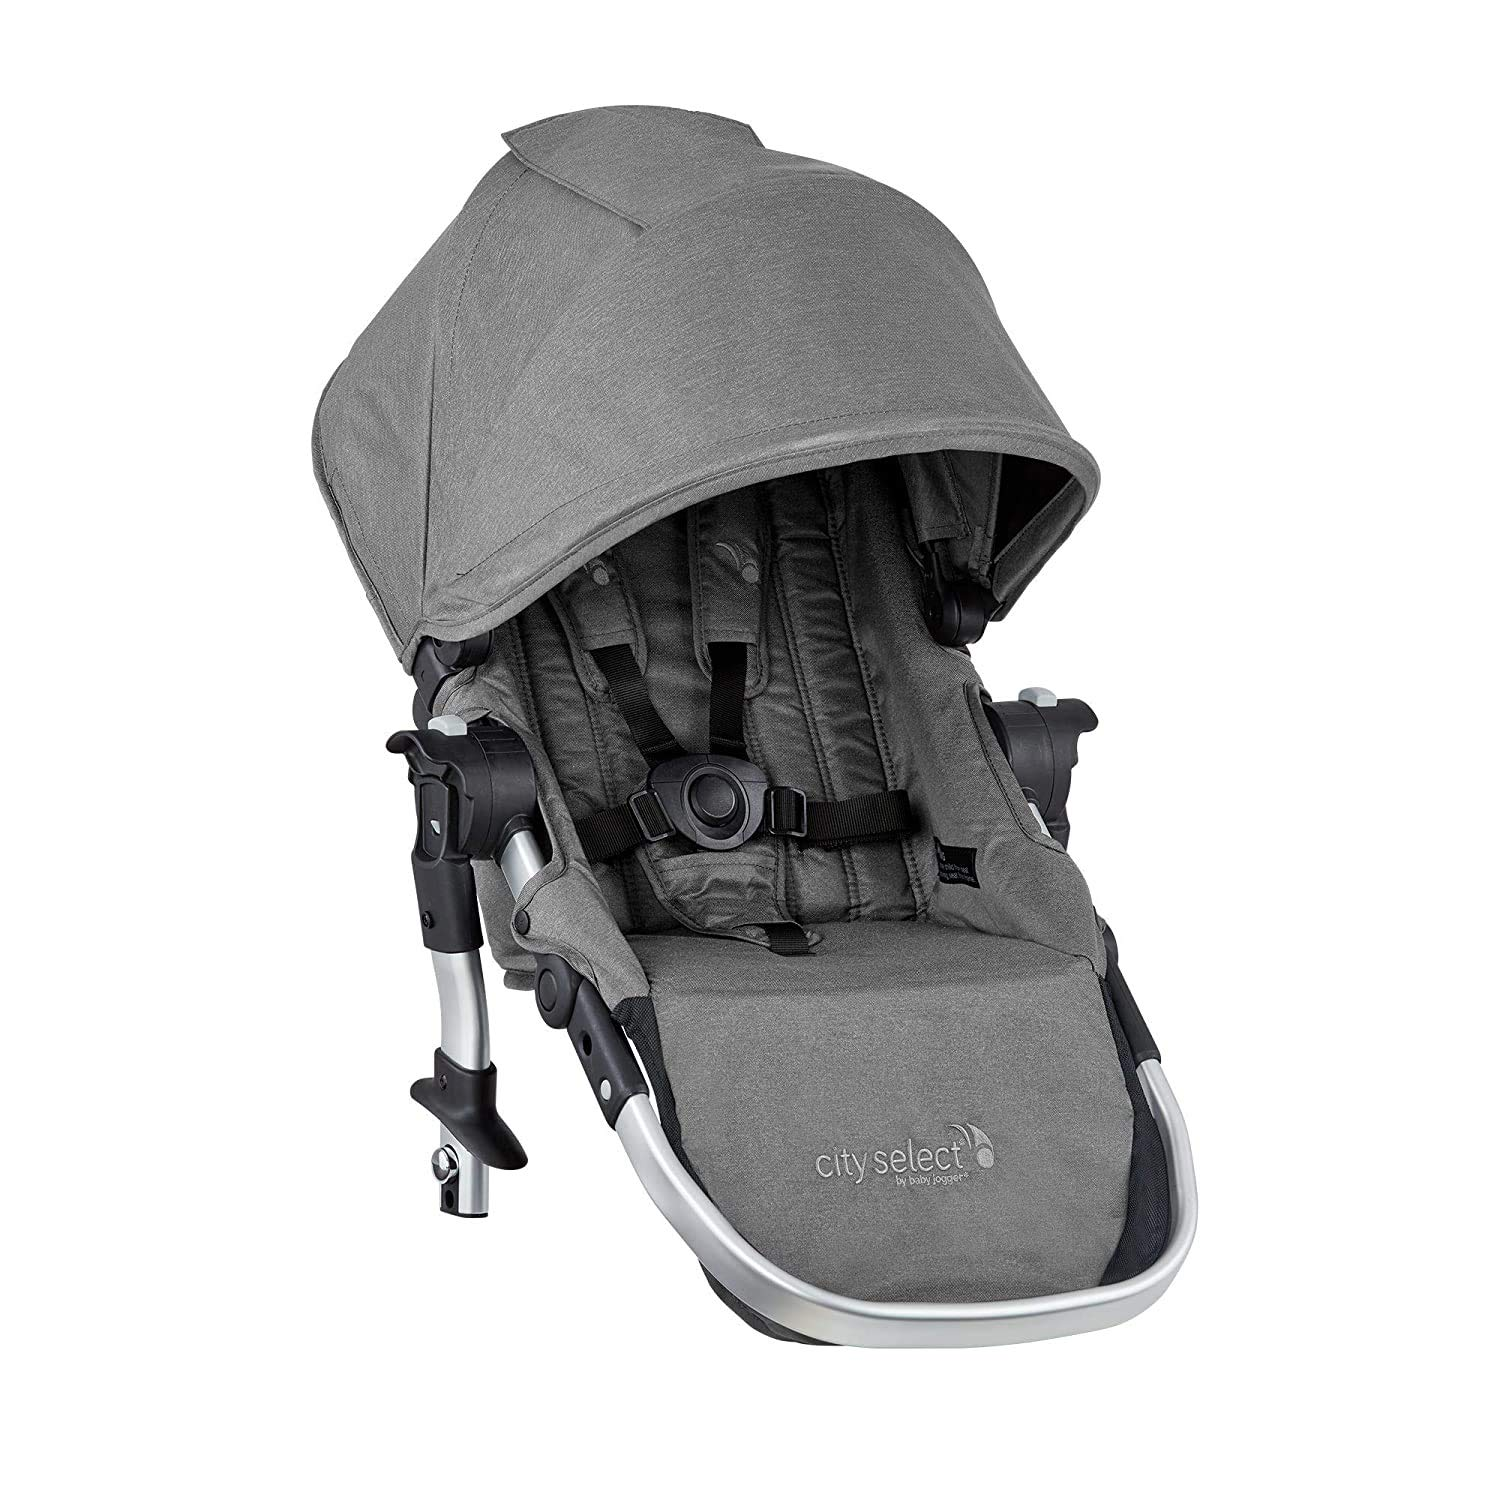 Baby Jogger Second Seat Ranking TOP15 Kit Limited time trial price Slate for Stroller Select City